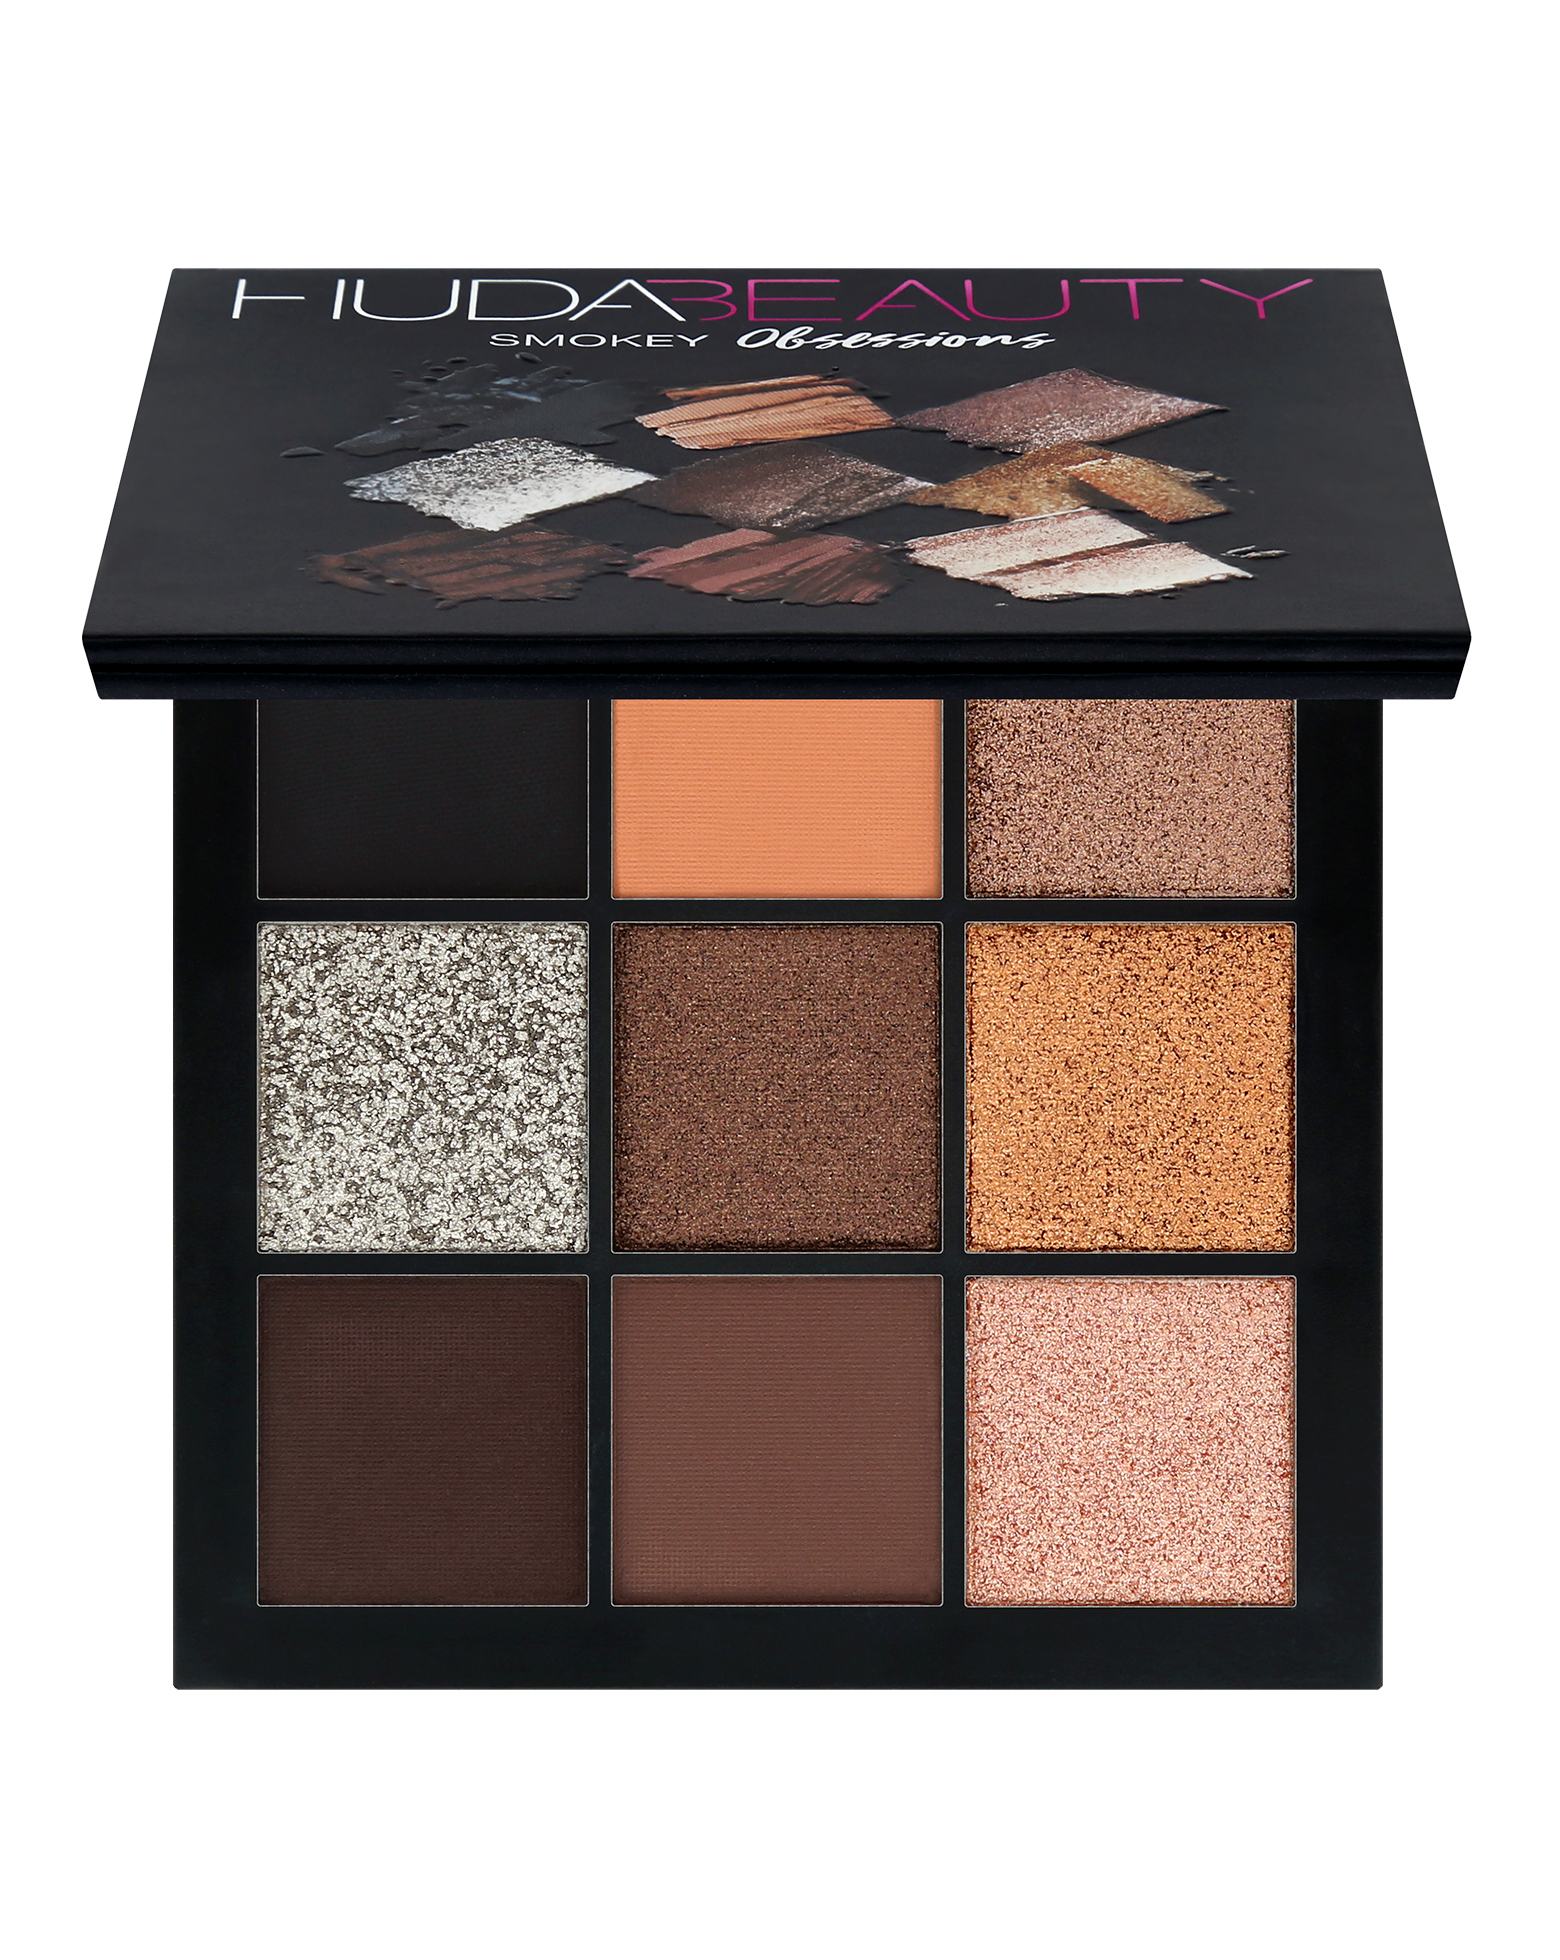 Huda Beauty Smokey Obsessions Palette Cult Beauty